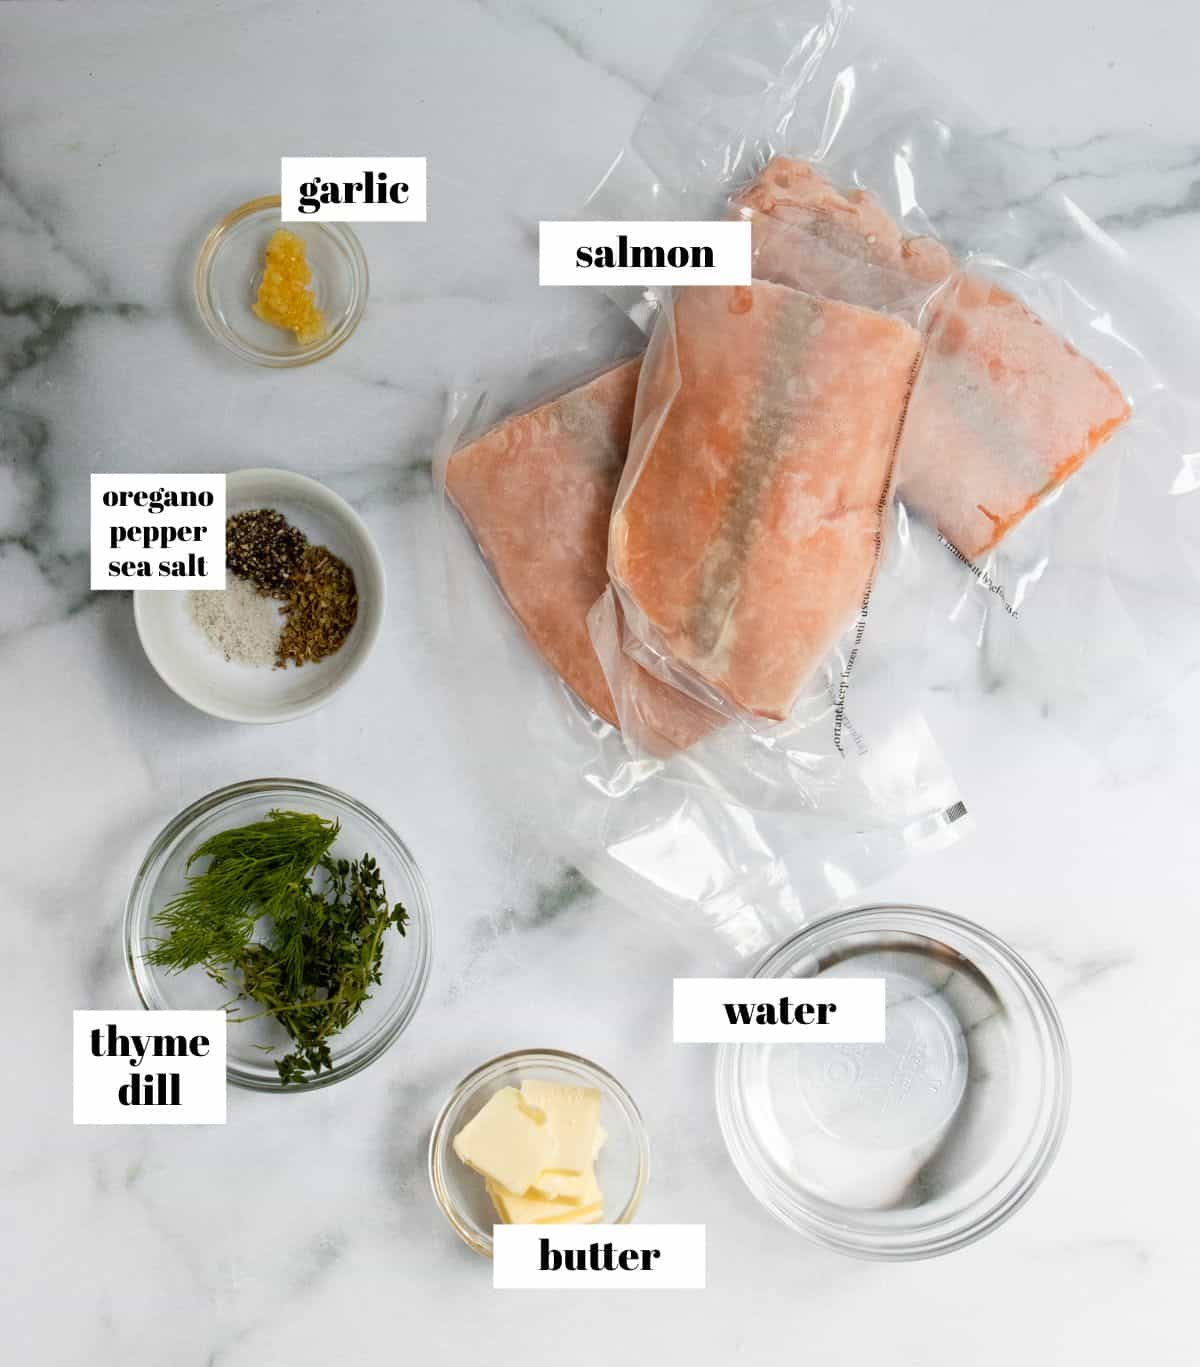 Salmon ingredients on counter.